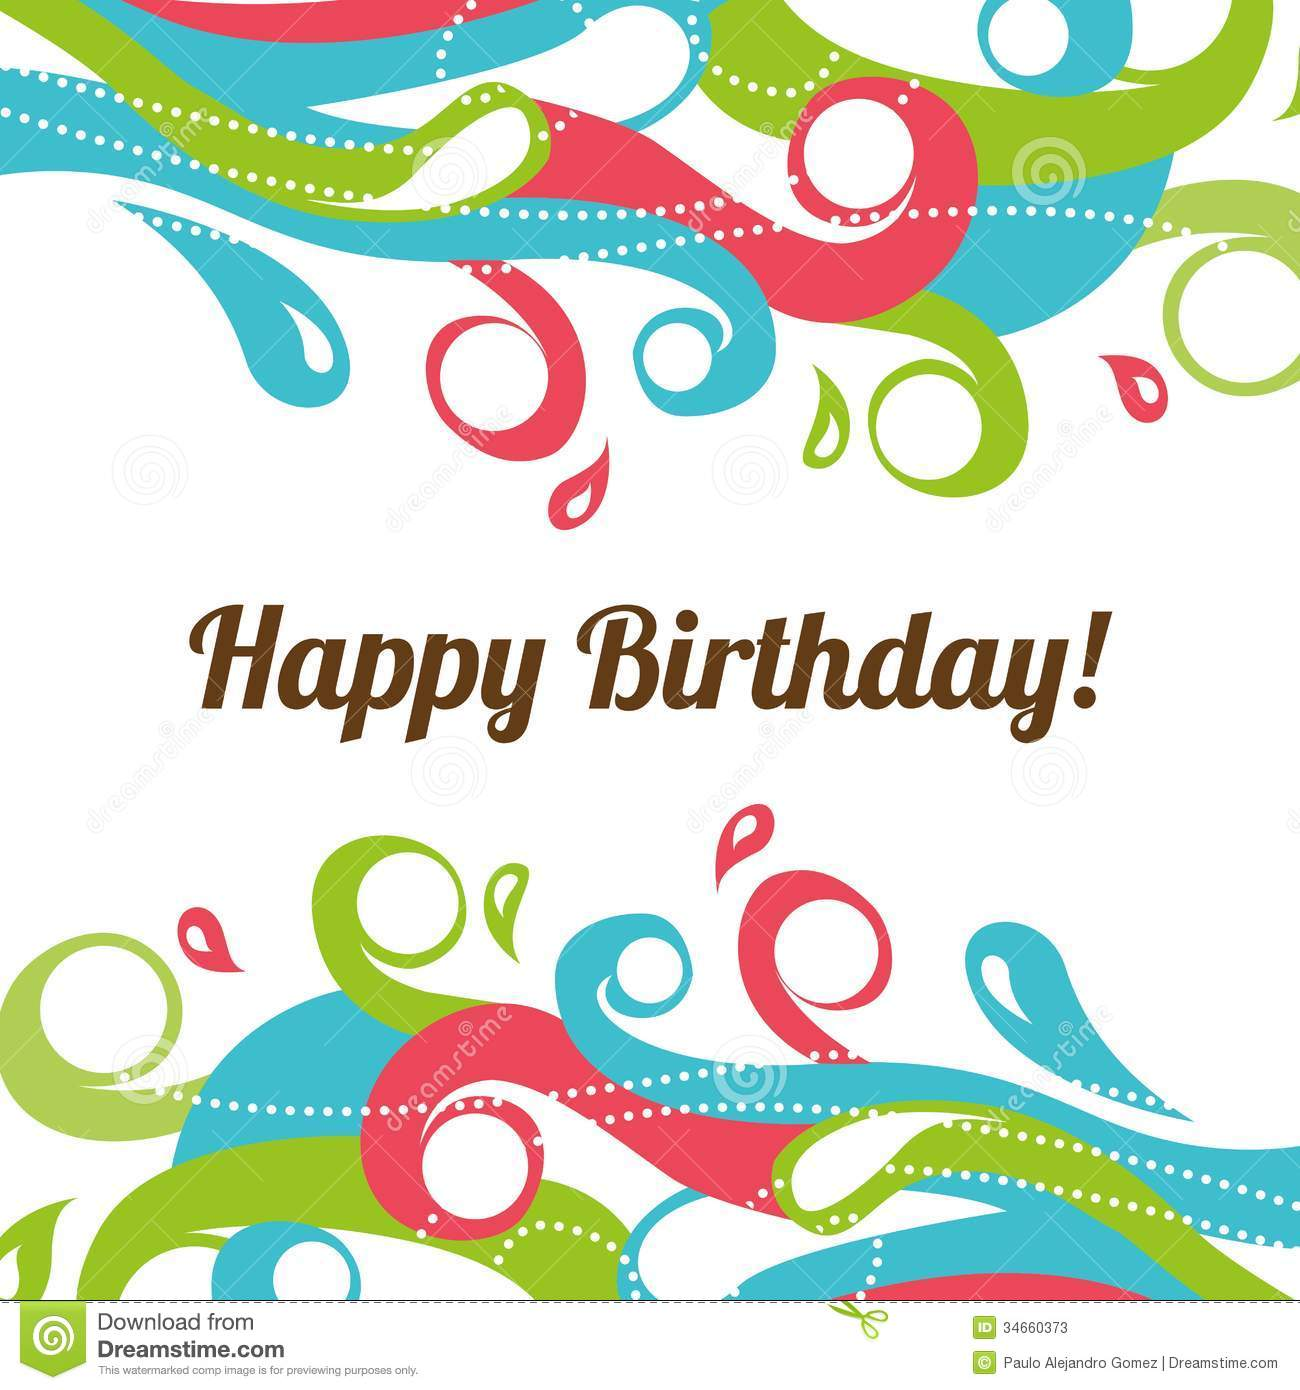 Happy birthday stock vector. Image of happiness, abstract - 34660373